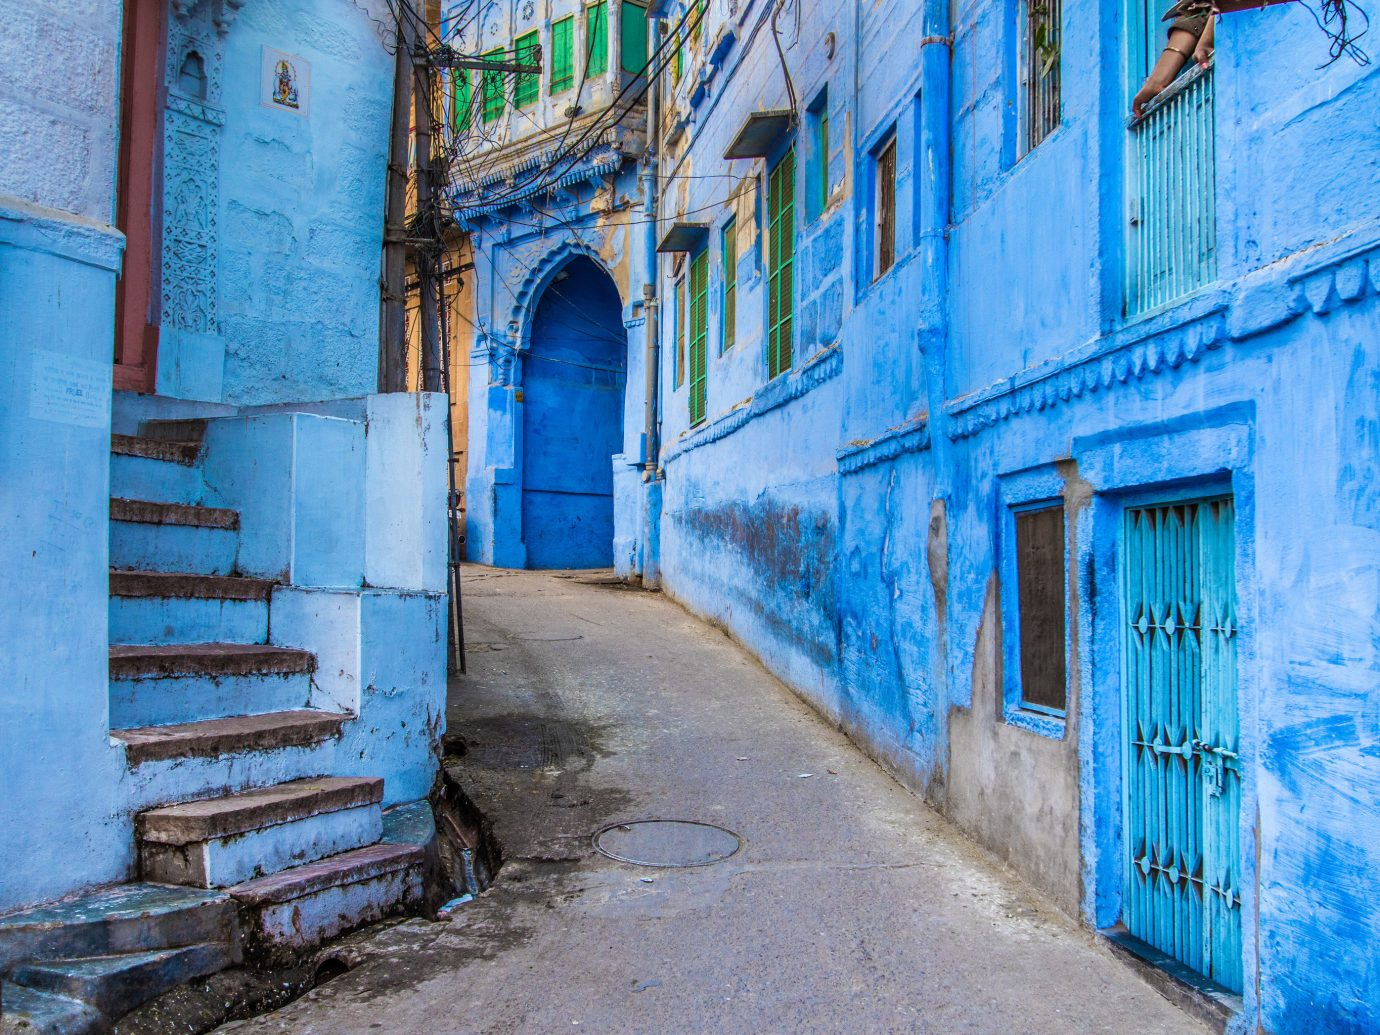 India Jaipur Jodhpur Trip Ideas building blue outdoor alley Town wall neighbourhood street way old facade window sky house road sidewalk dirty